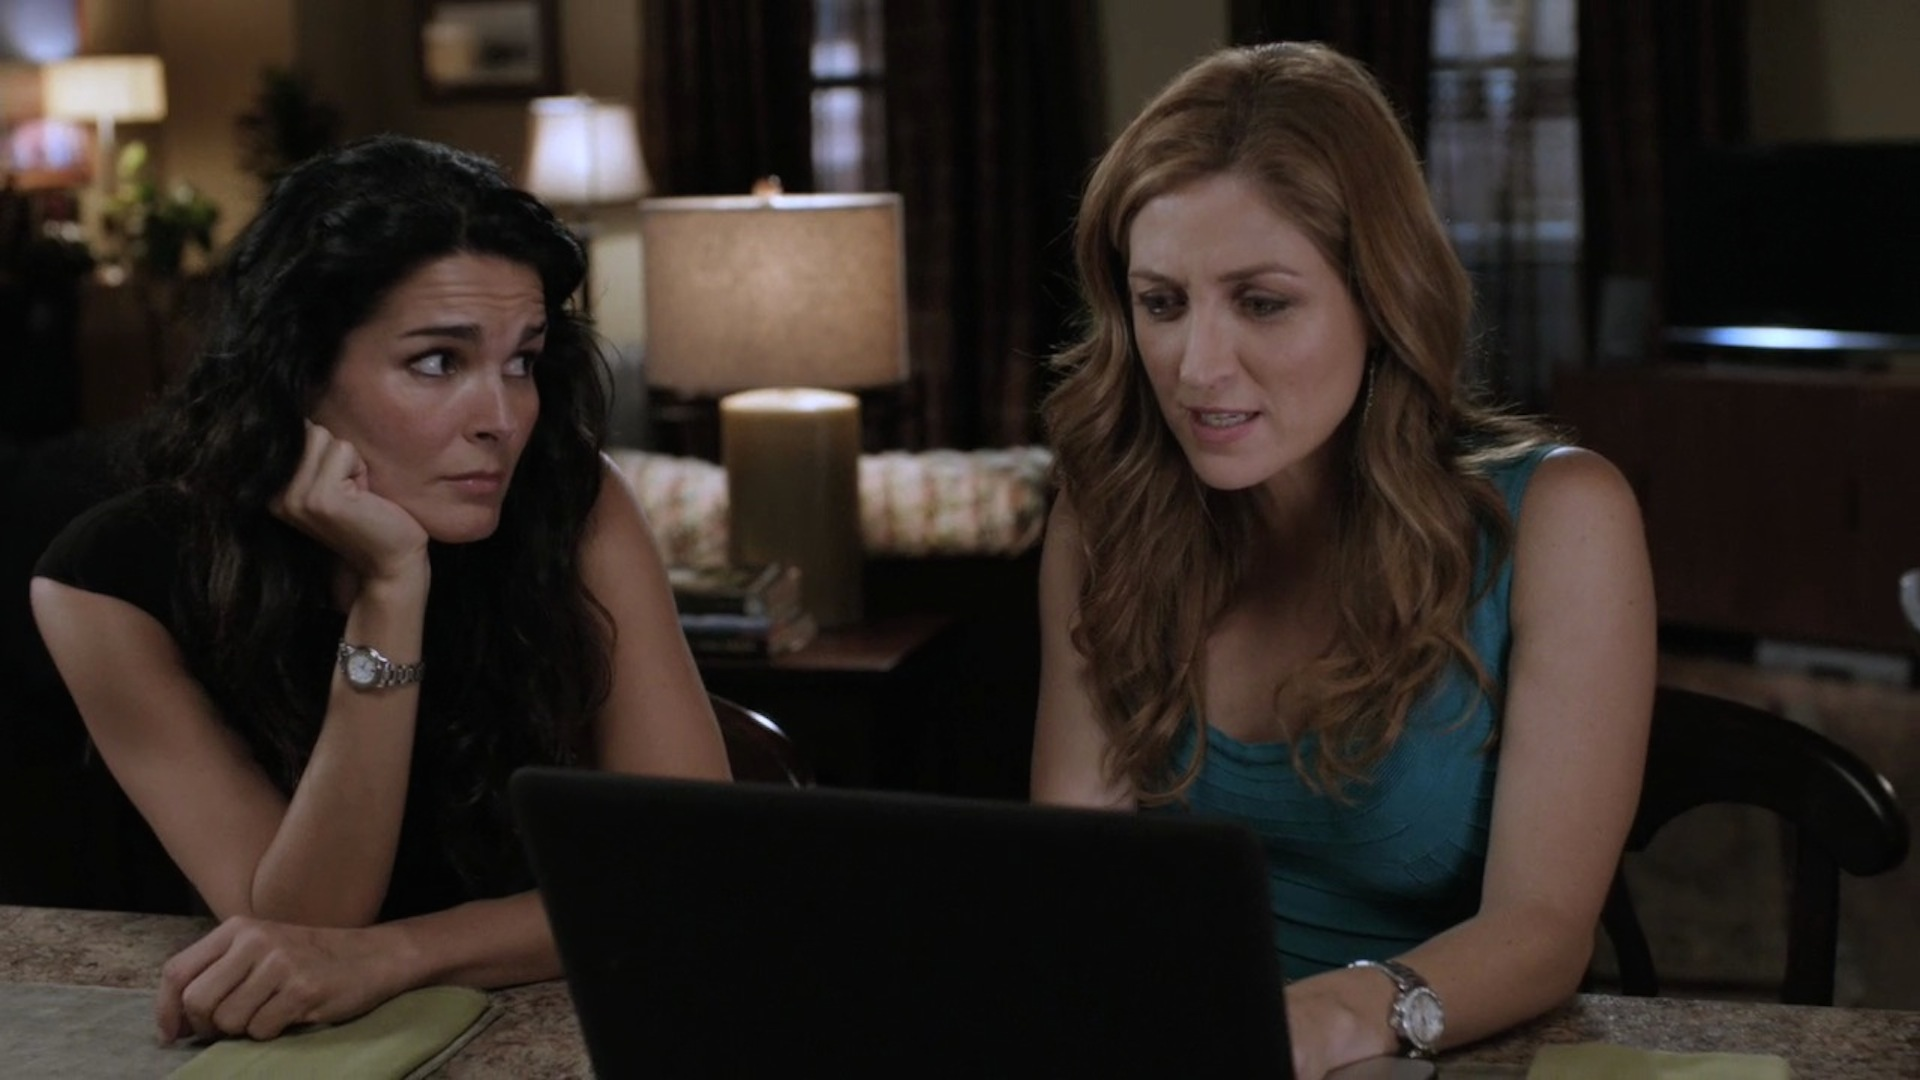 Rizzoli and Isles' Jane and Maura hang out